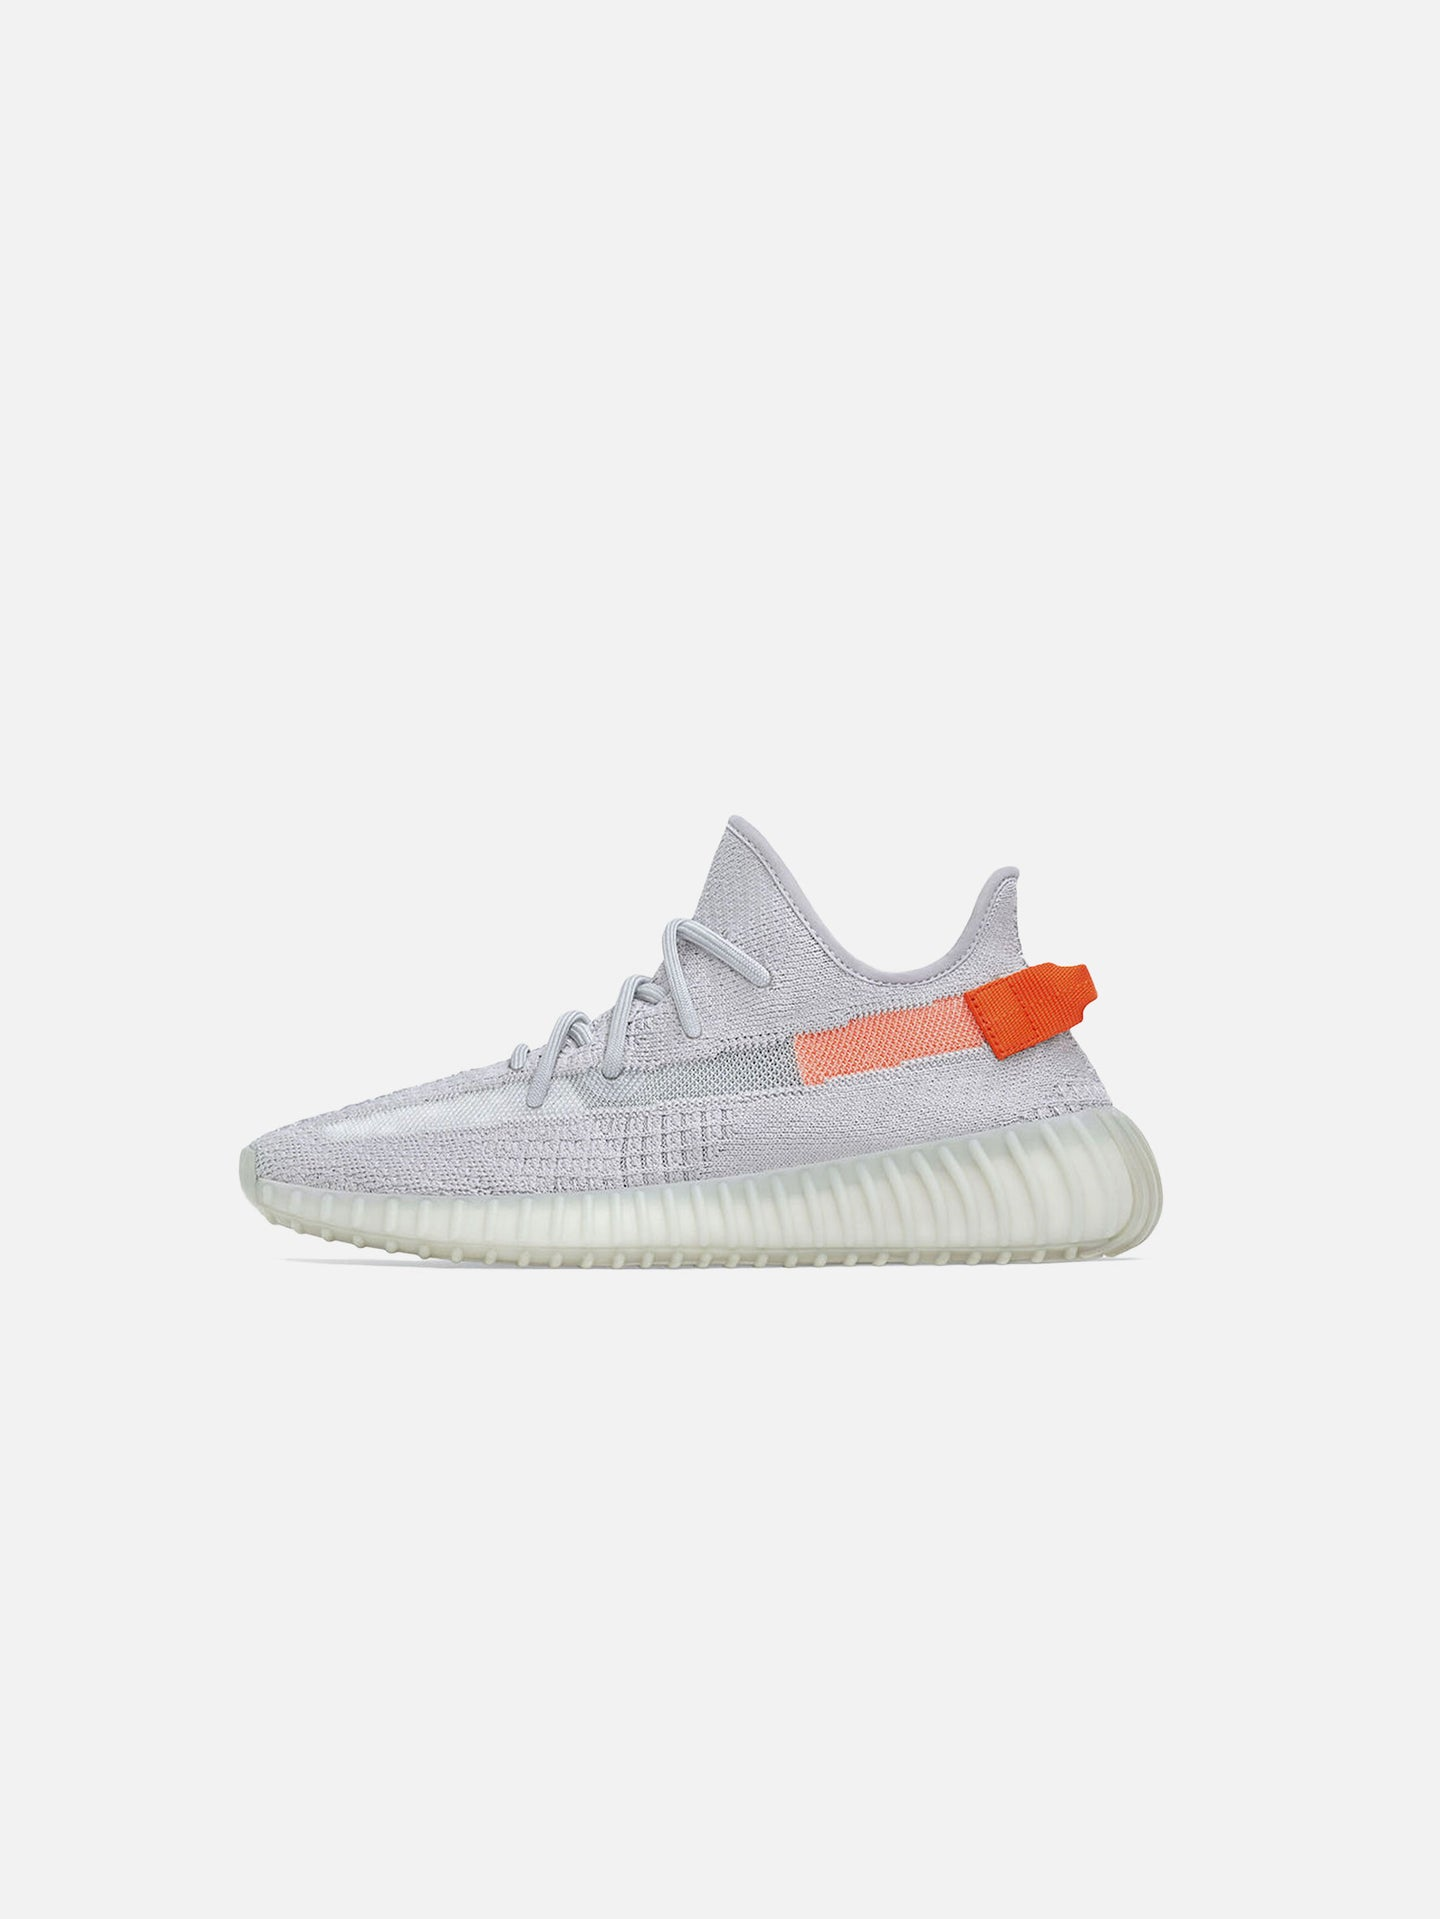 YEEZY BOOST 350 V2: TAIL LIGHT